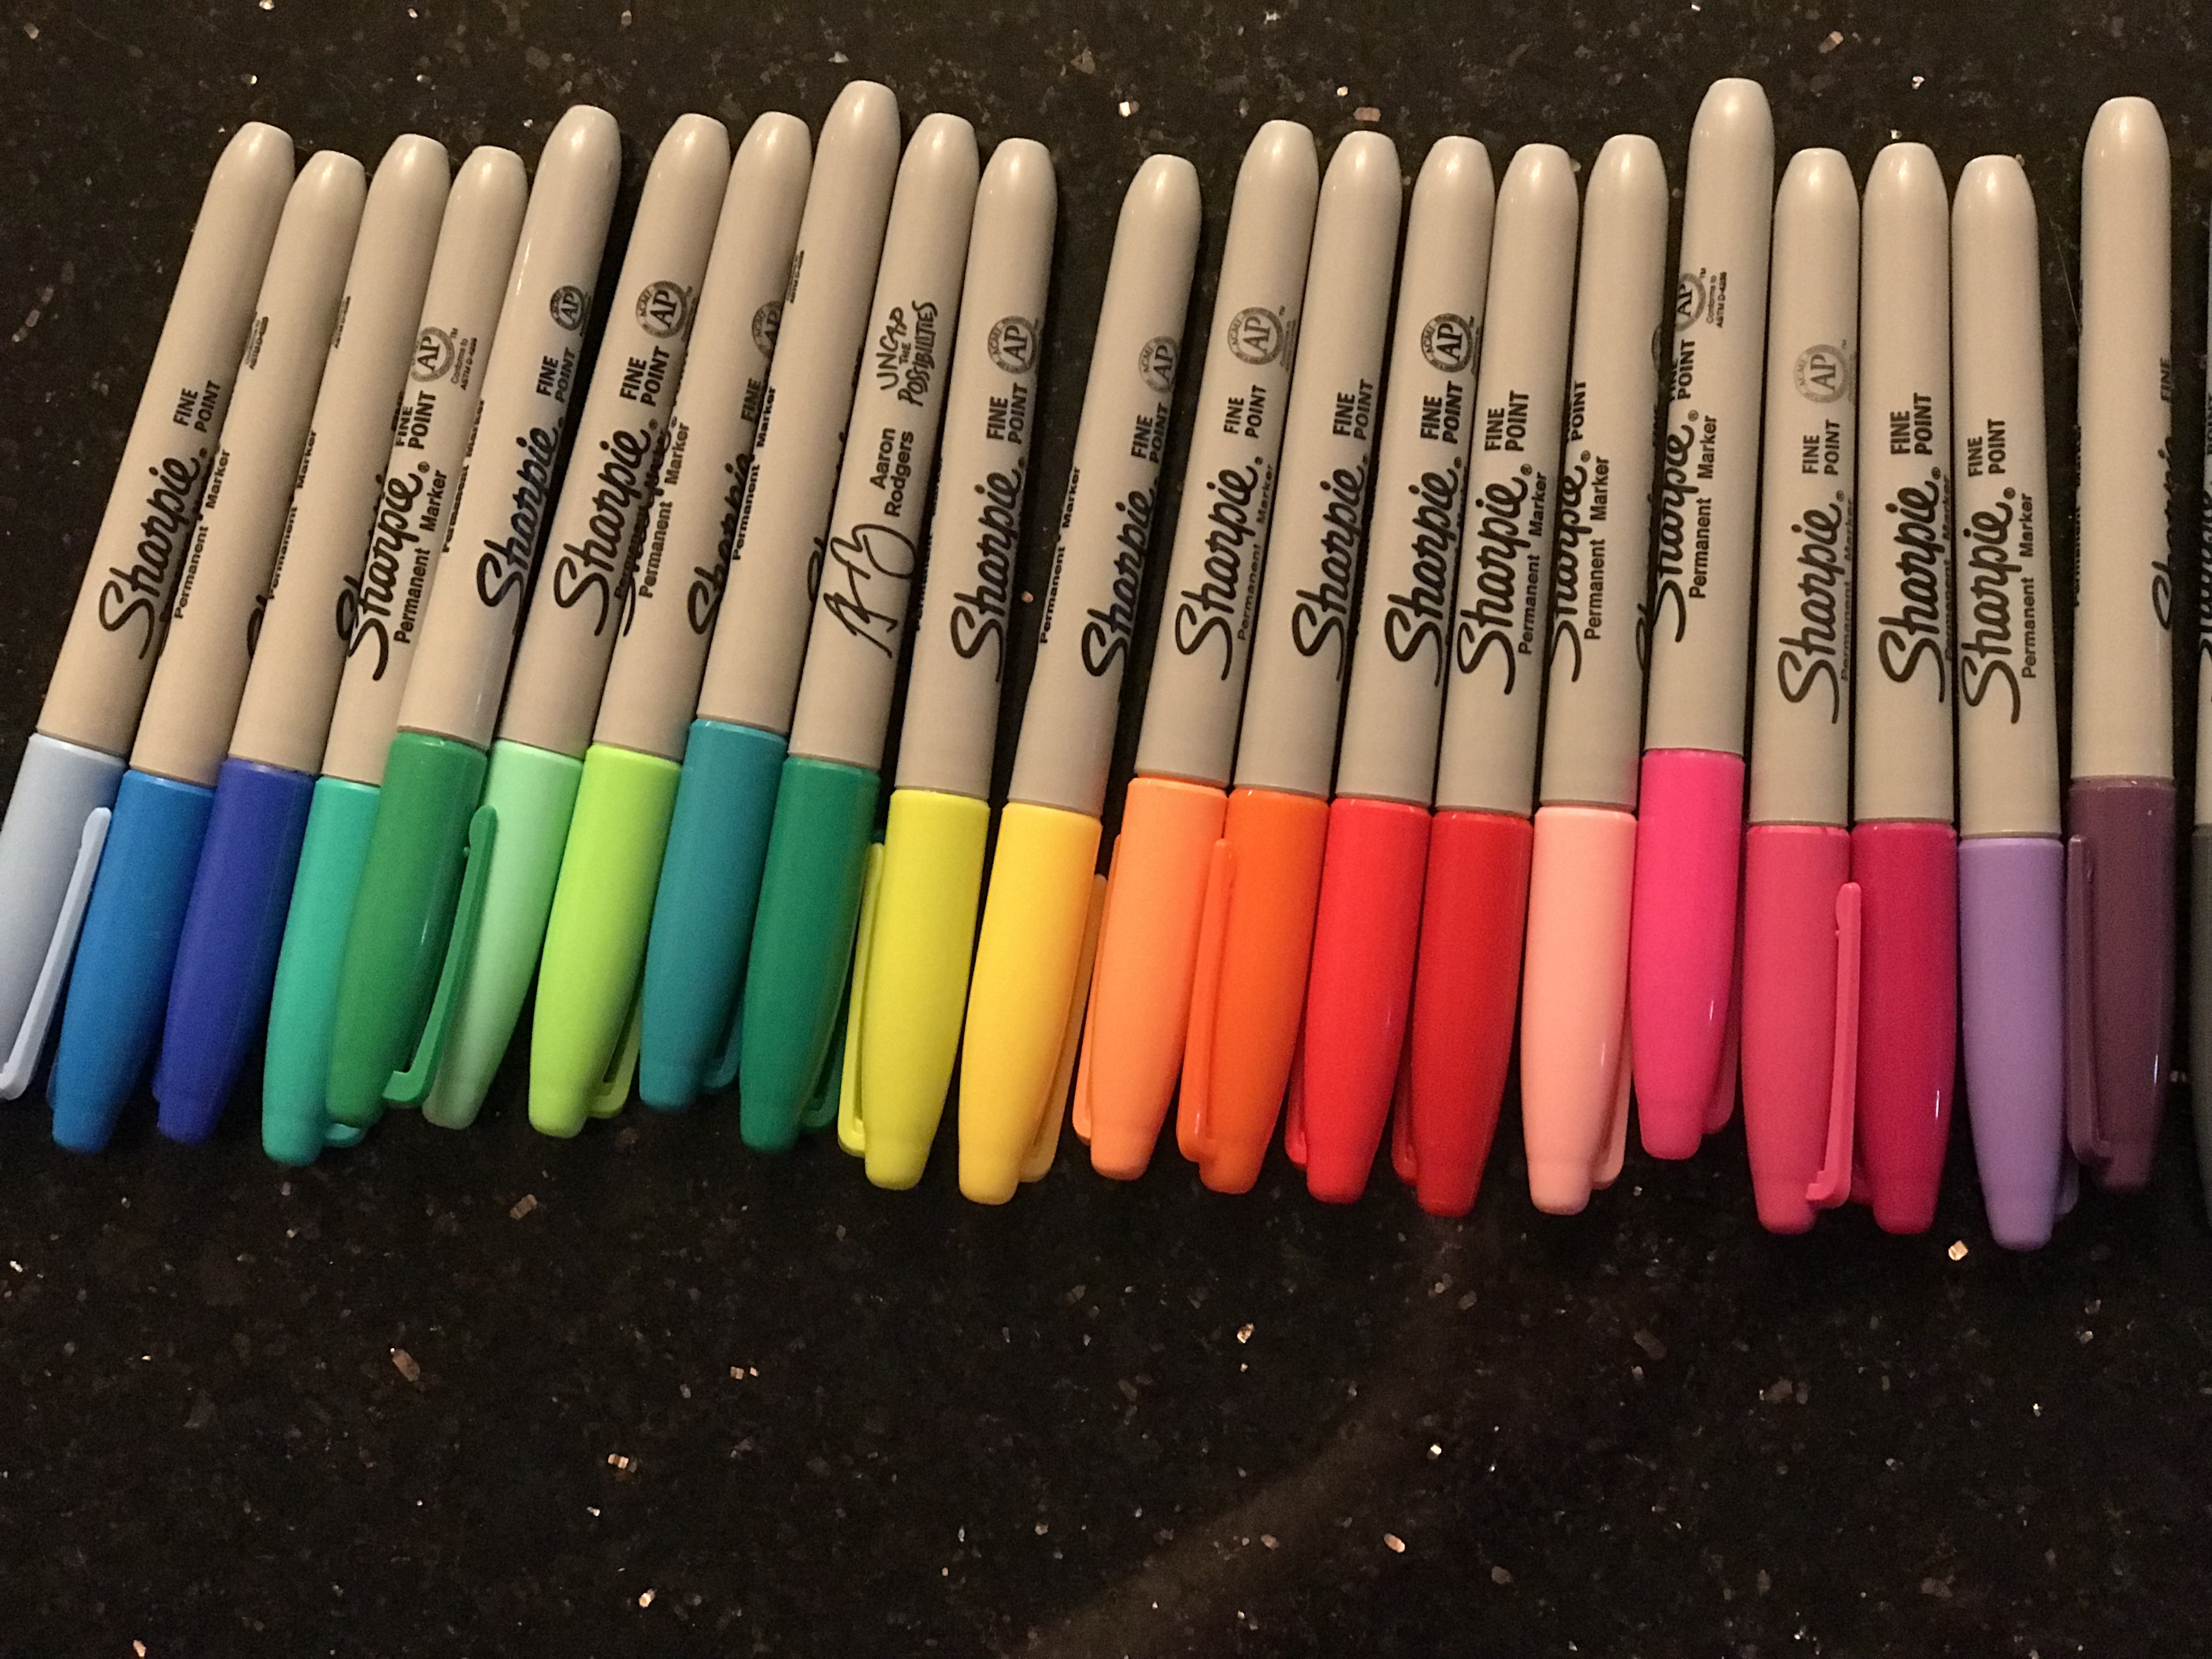 Assorted colored Sharpies